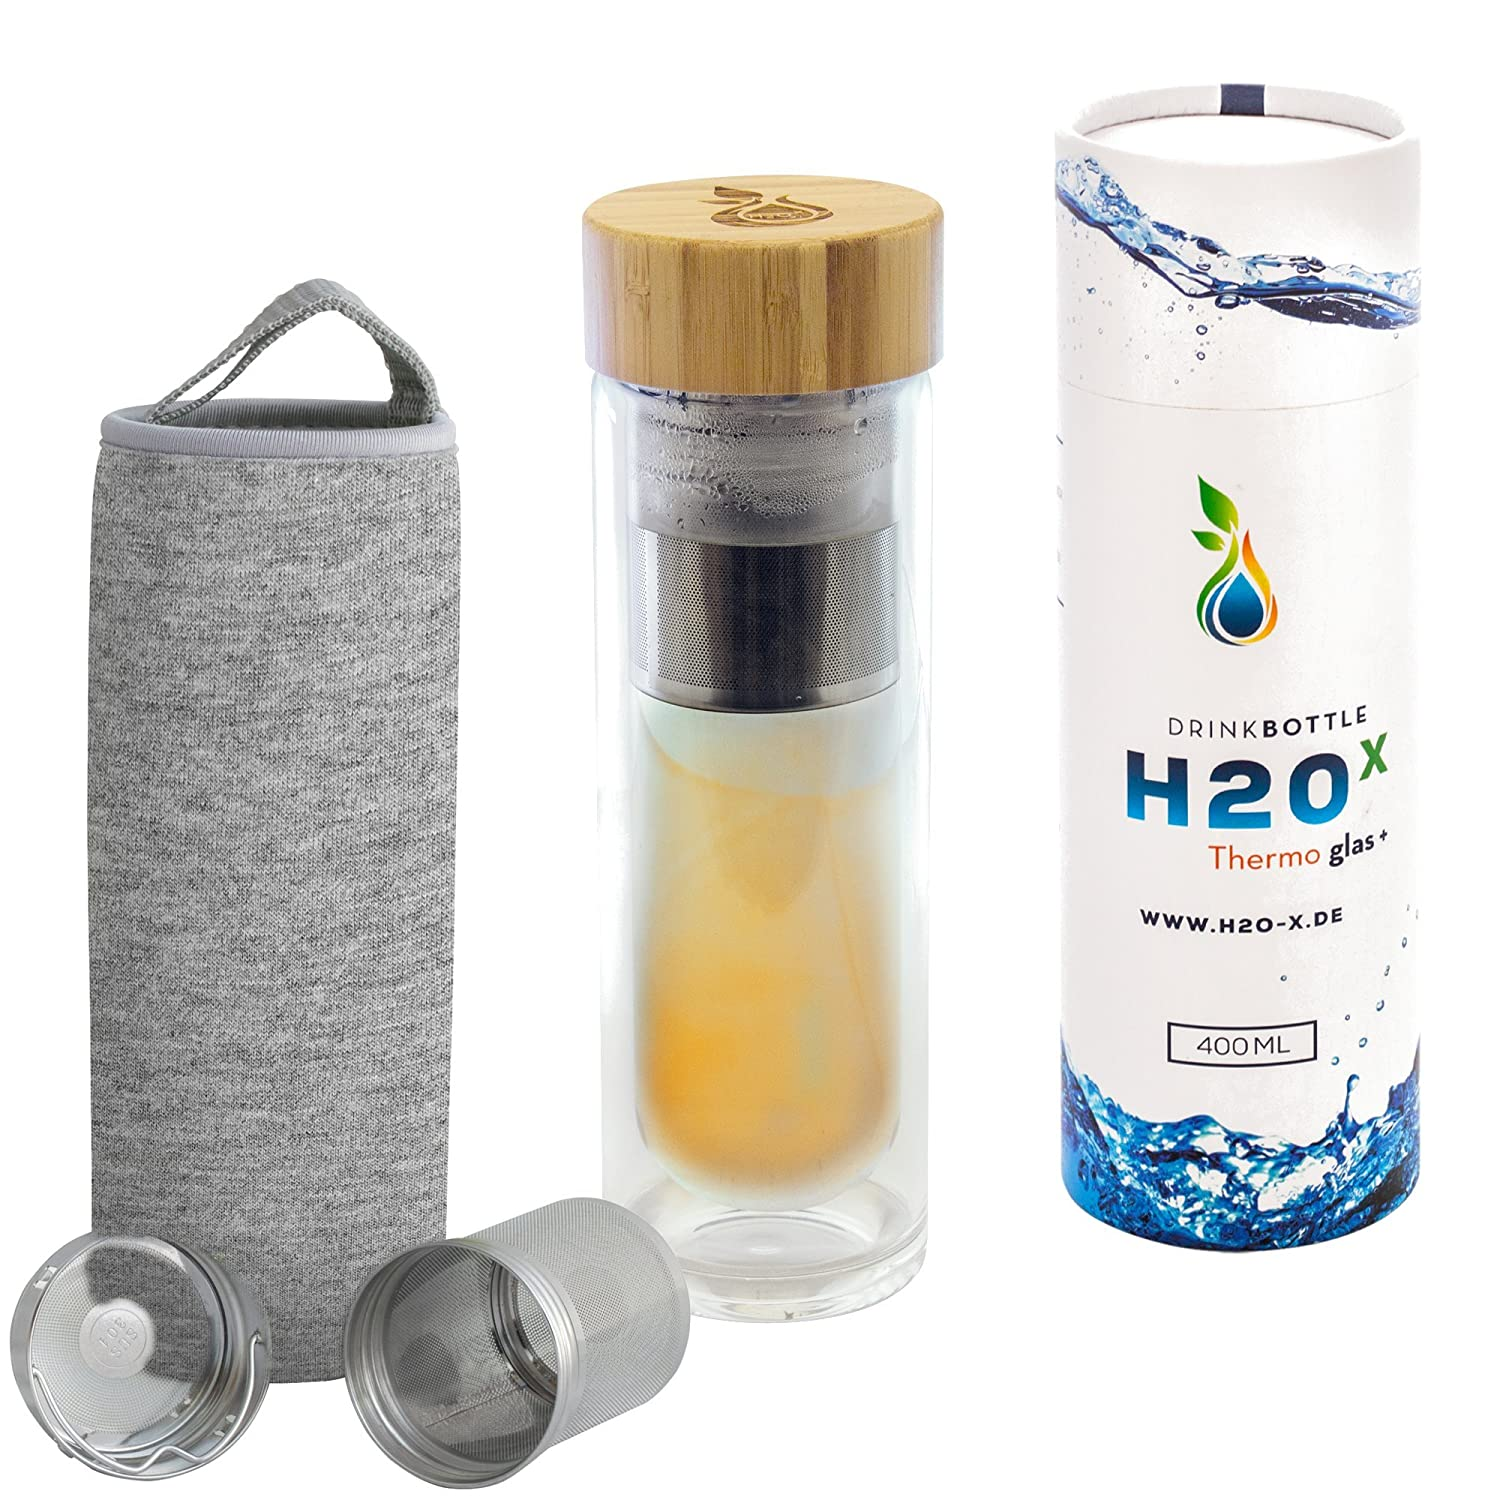 Teiera Set H2O-X | Tea to go bottiglia di vetro a doppia parete con colino da tè Thermo tazza incluso custodia copertura isolante & | Borraccia Termica Bottiglia Tea Maker bicchiere di vetro isolante Travel Mug Infused Water 400 ml Blau Magnus-Trade